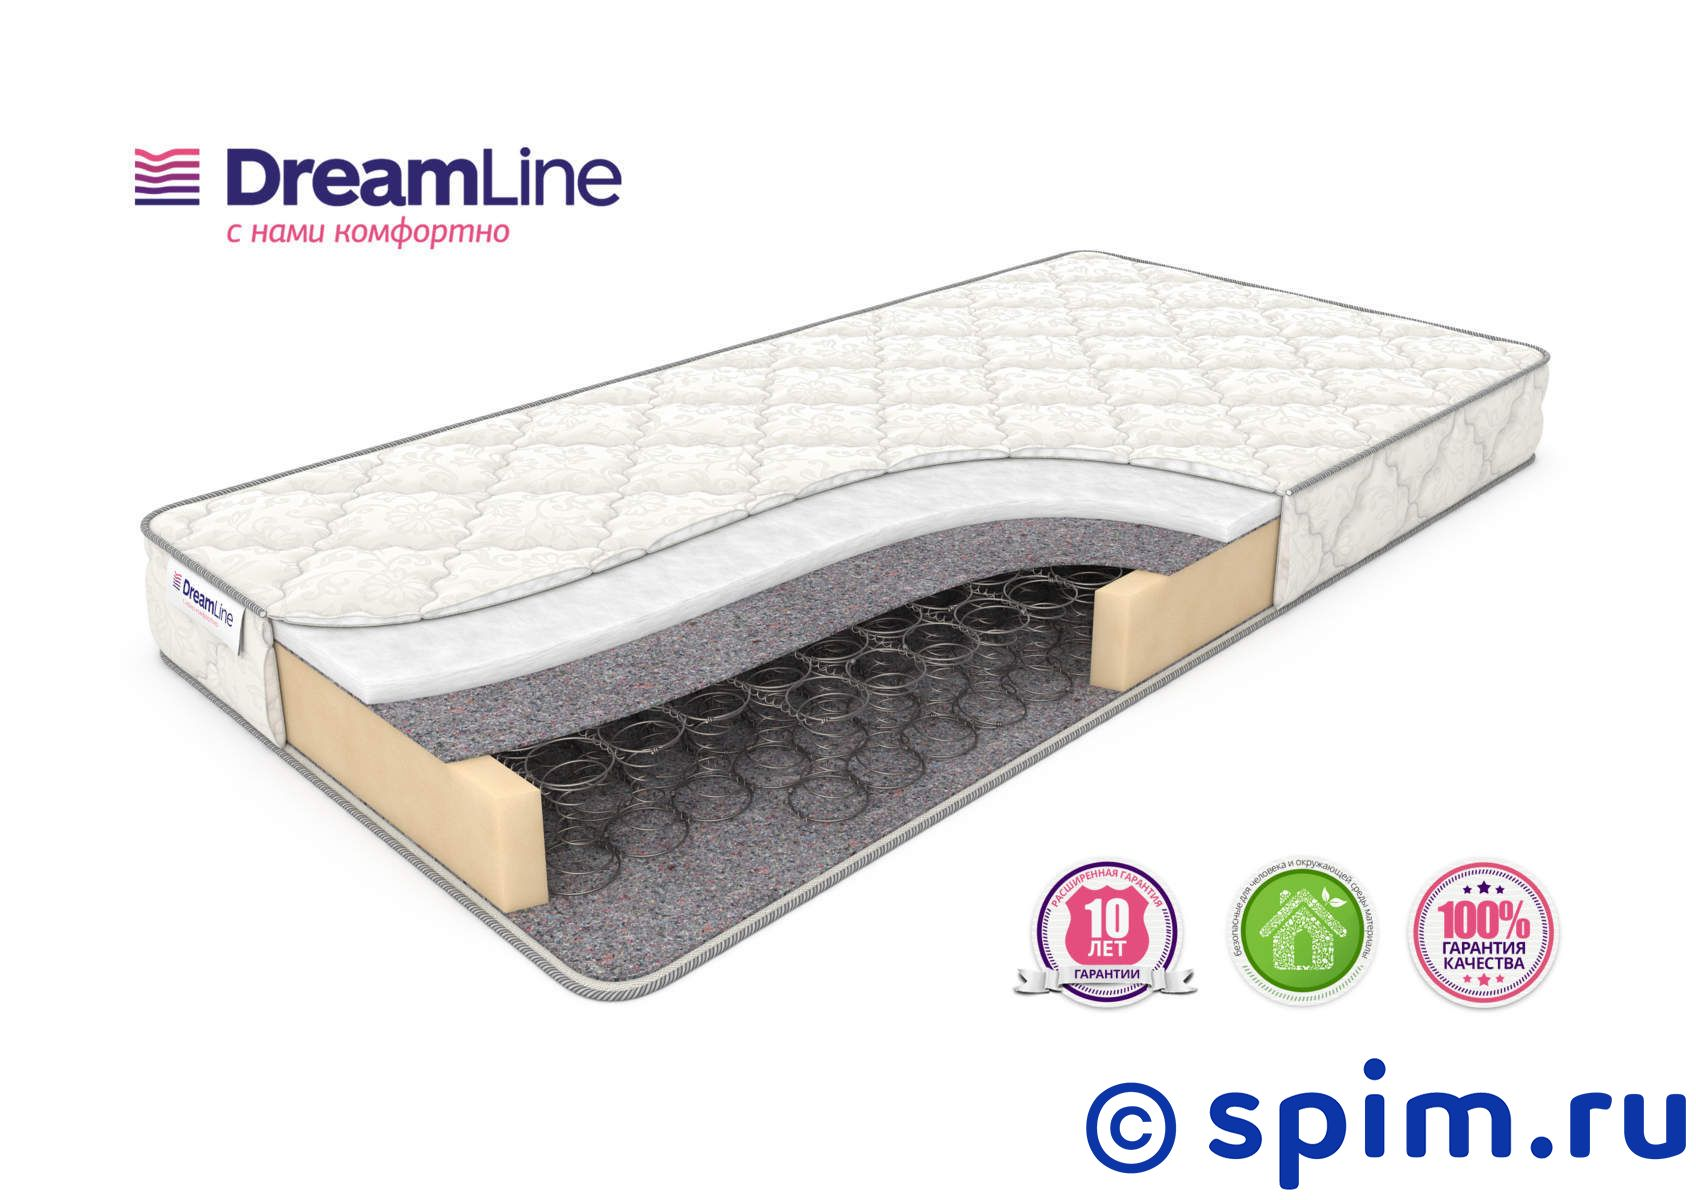 Матрас DreamLine Single Hol Bonnell 200х195 см